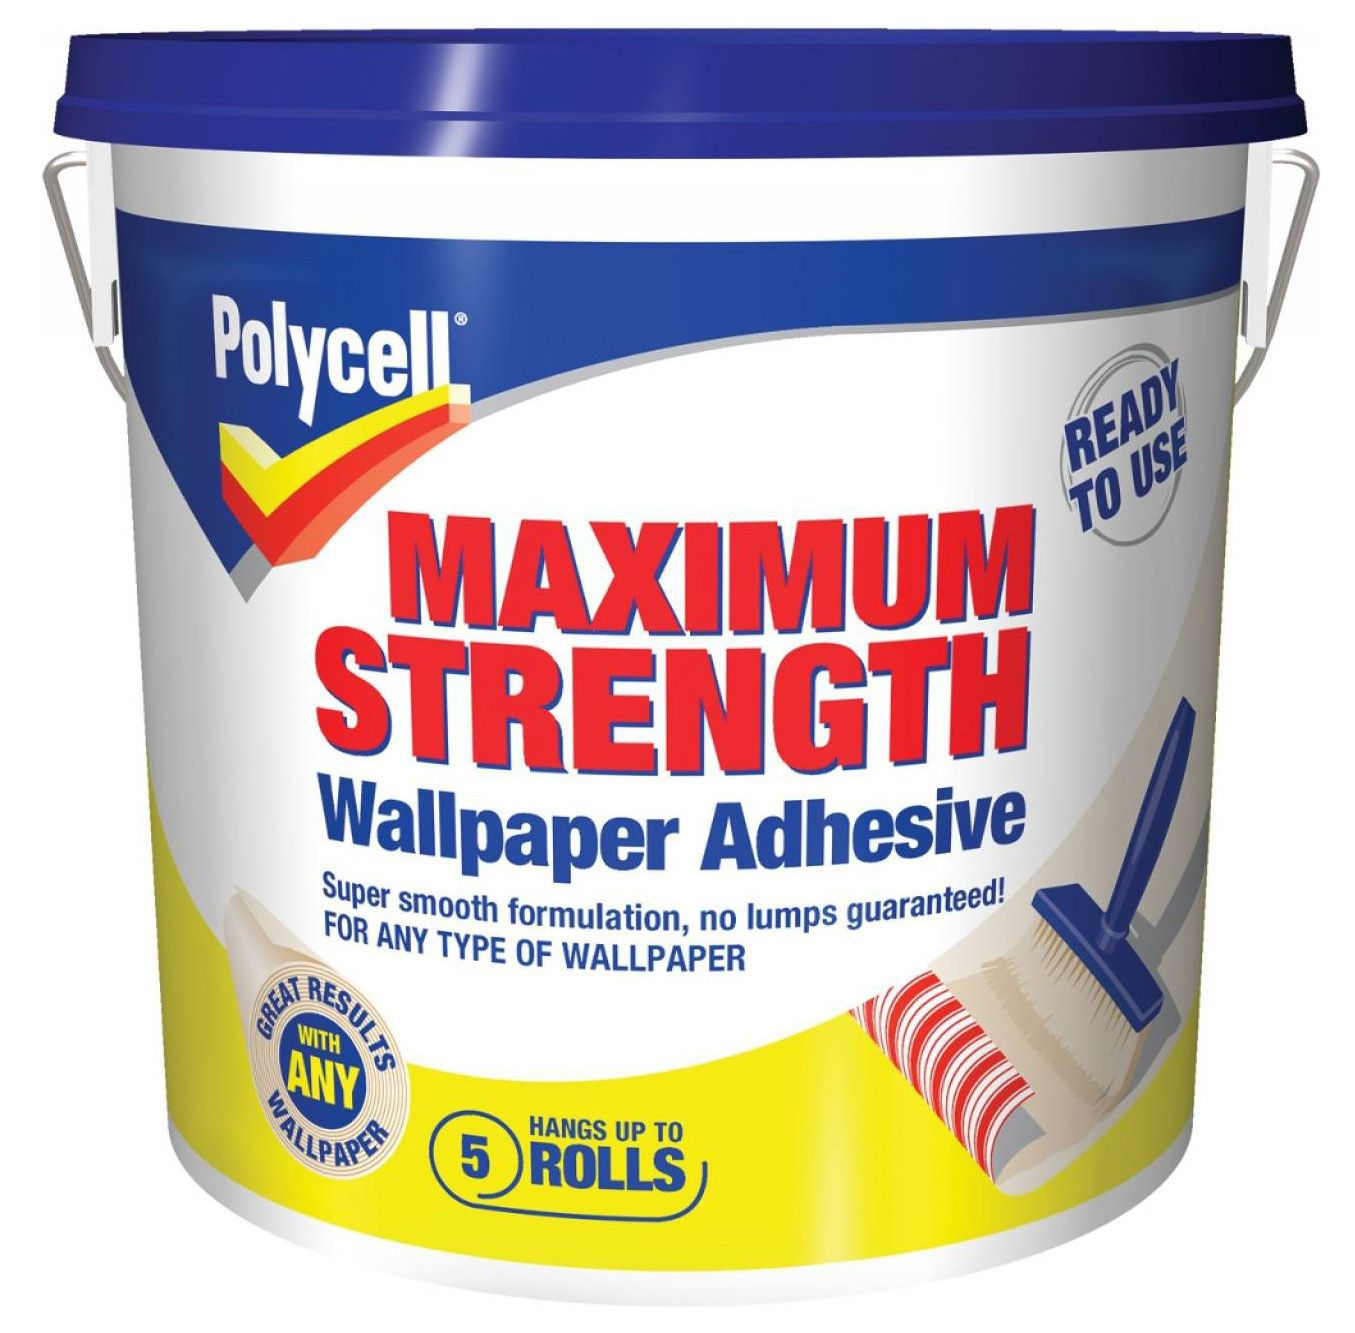 Polycell Maximum Strength Ready To Use Wallpaper Adhesive 45kg